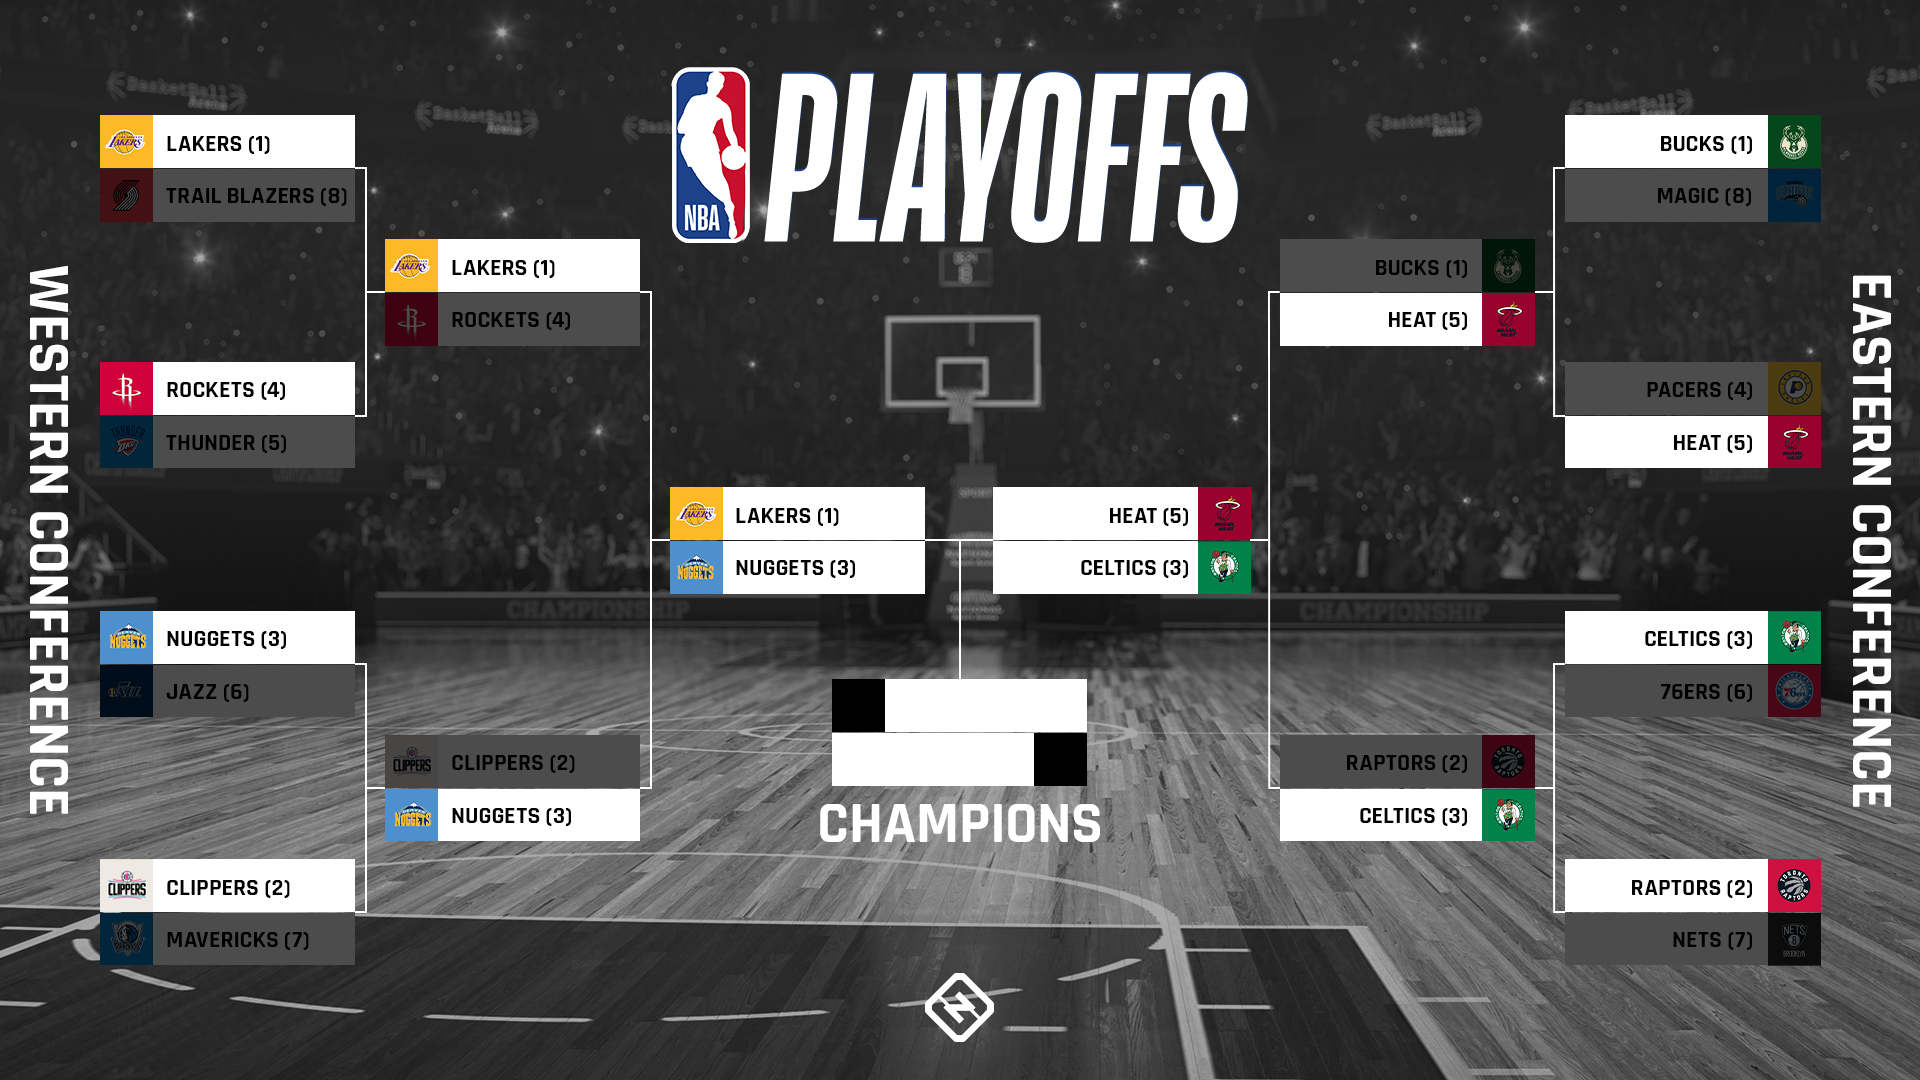 Nba Playoff Bracket 2020 Updated Tv Schedule Scores Results For The Conference Finals Sporting News